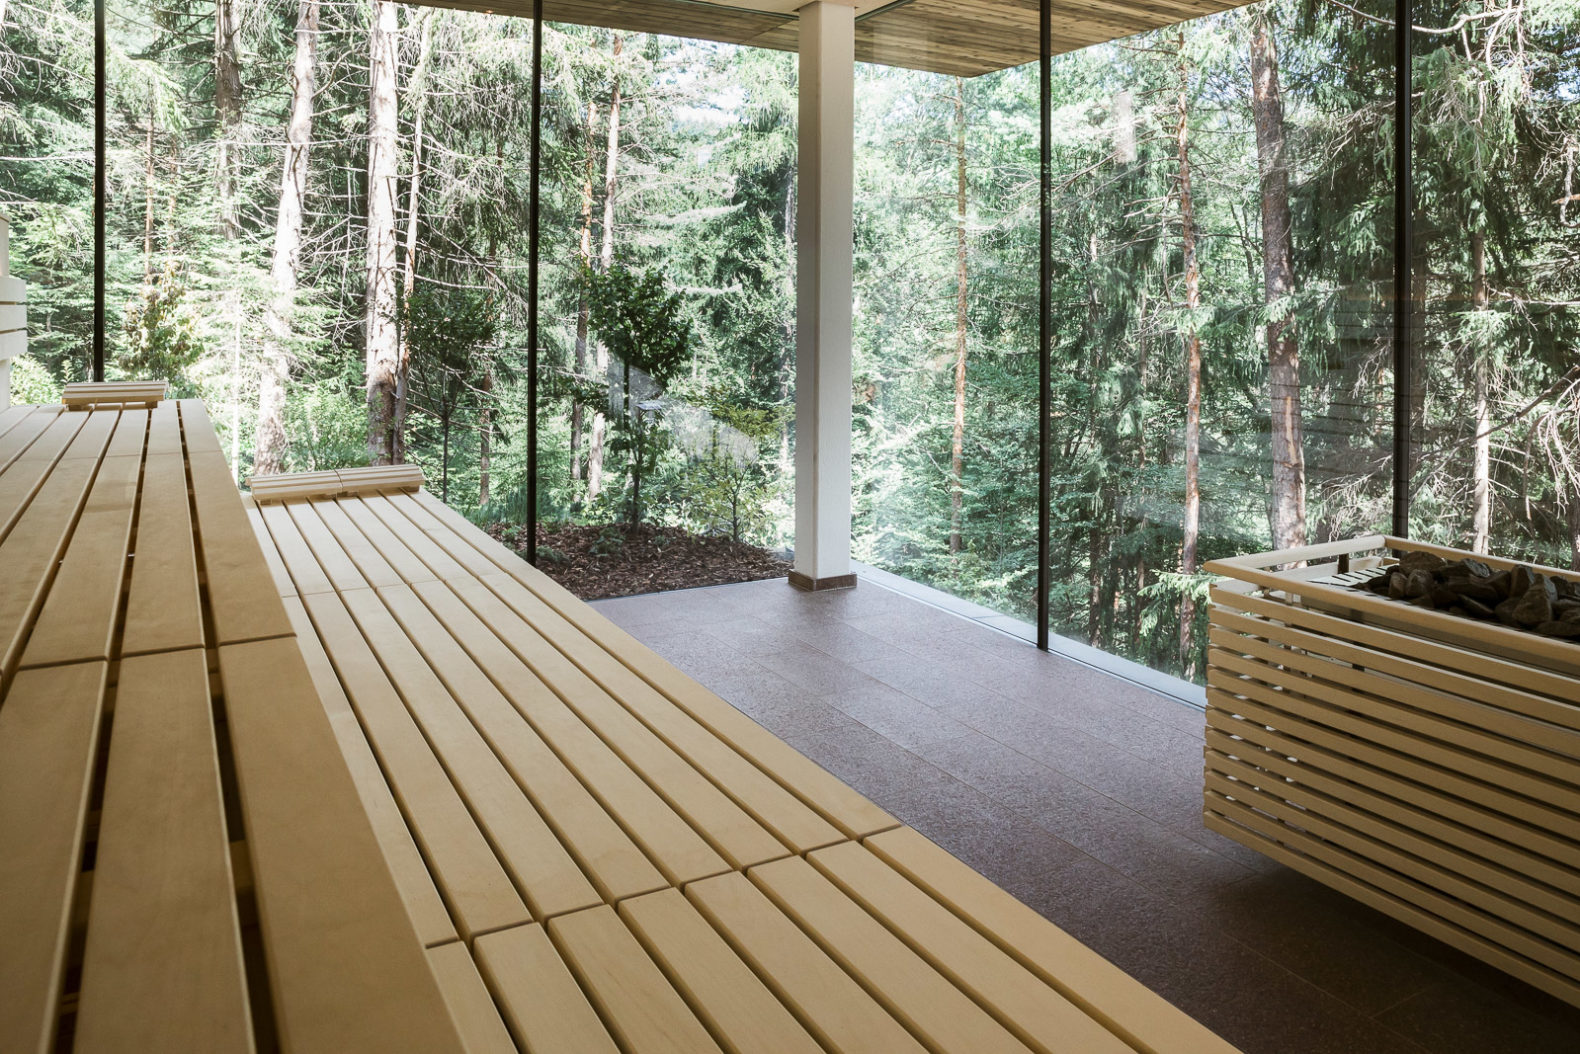 indoor-nature-sauna-nectarandpulse-eco-hotel-saltus-south-tyrol-italy